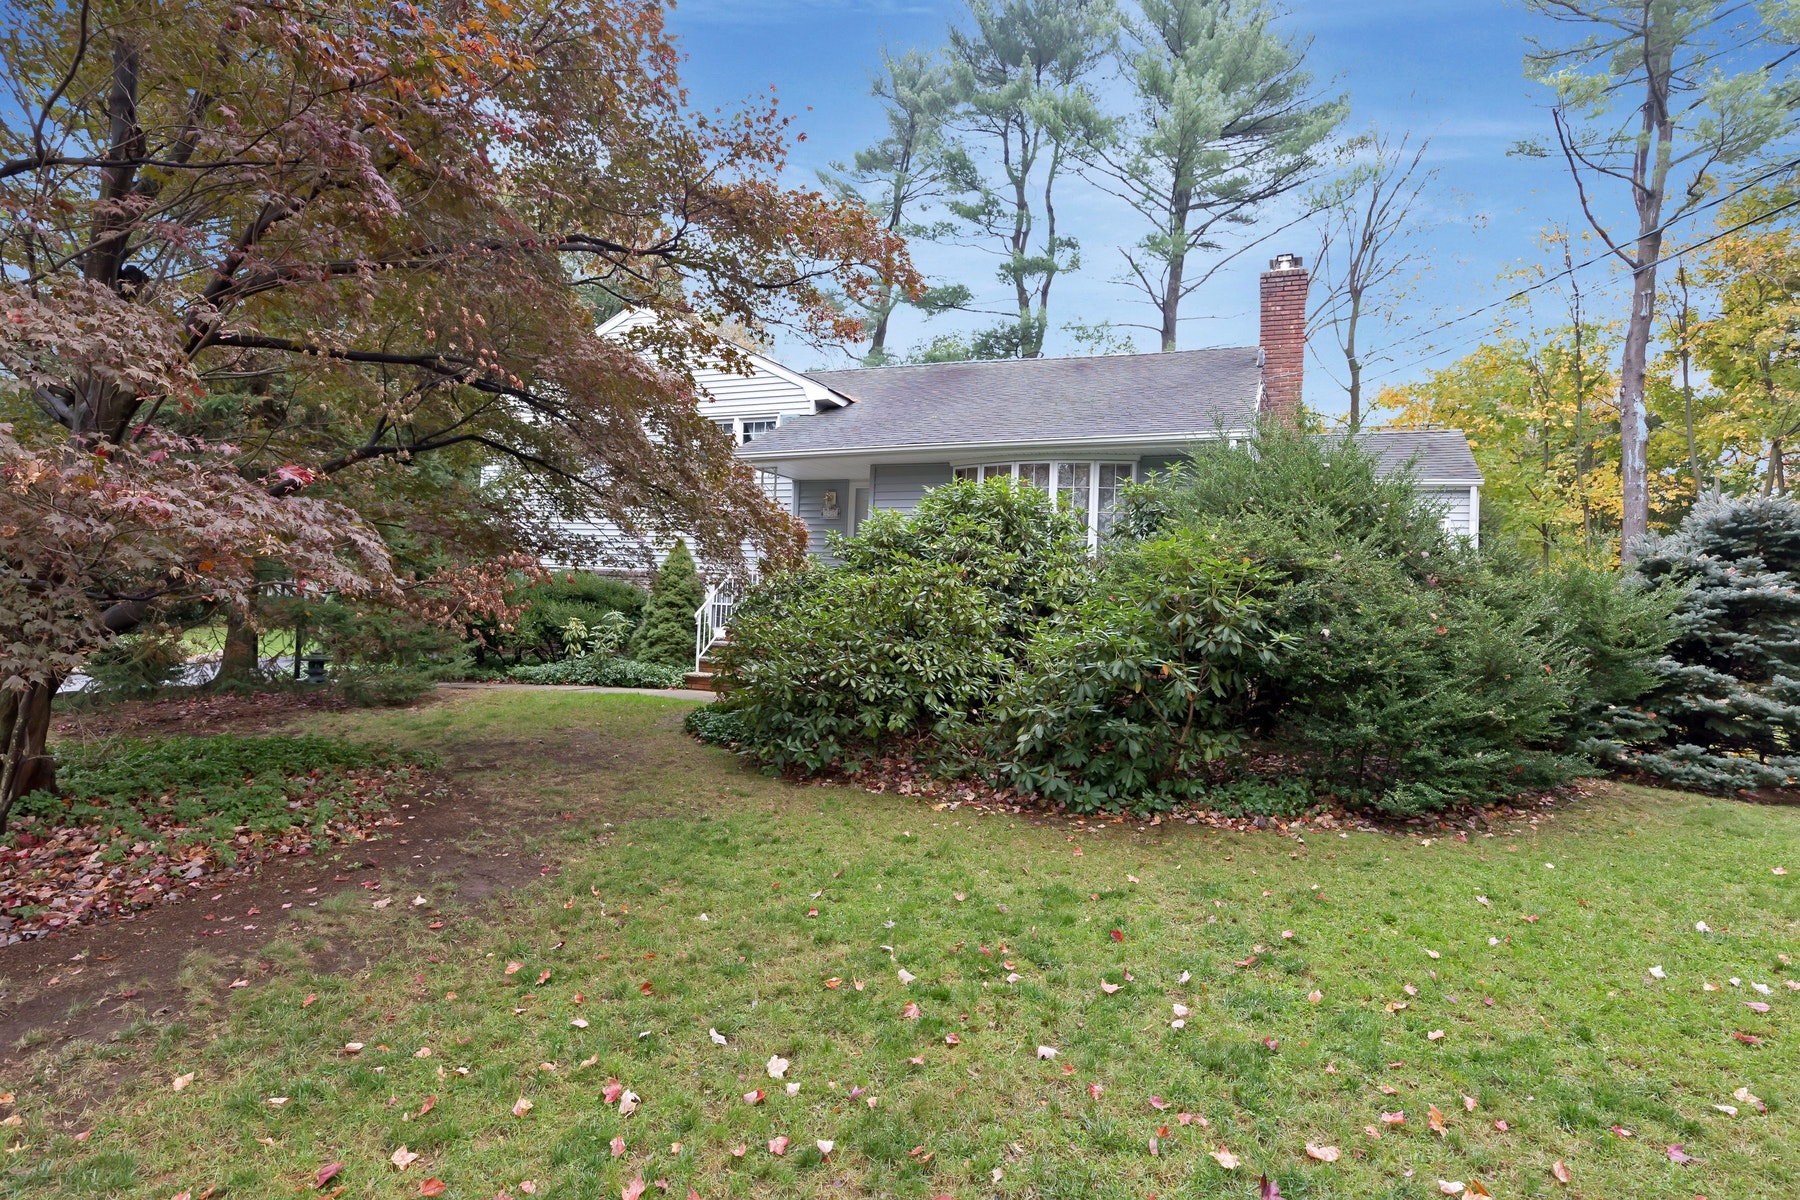 Single Family Home for Sale at Delightful Home 1910 Inverness Dr Scotch Plains, New Jersey 07076 United States